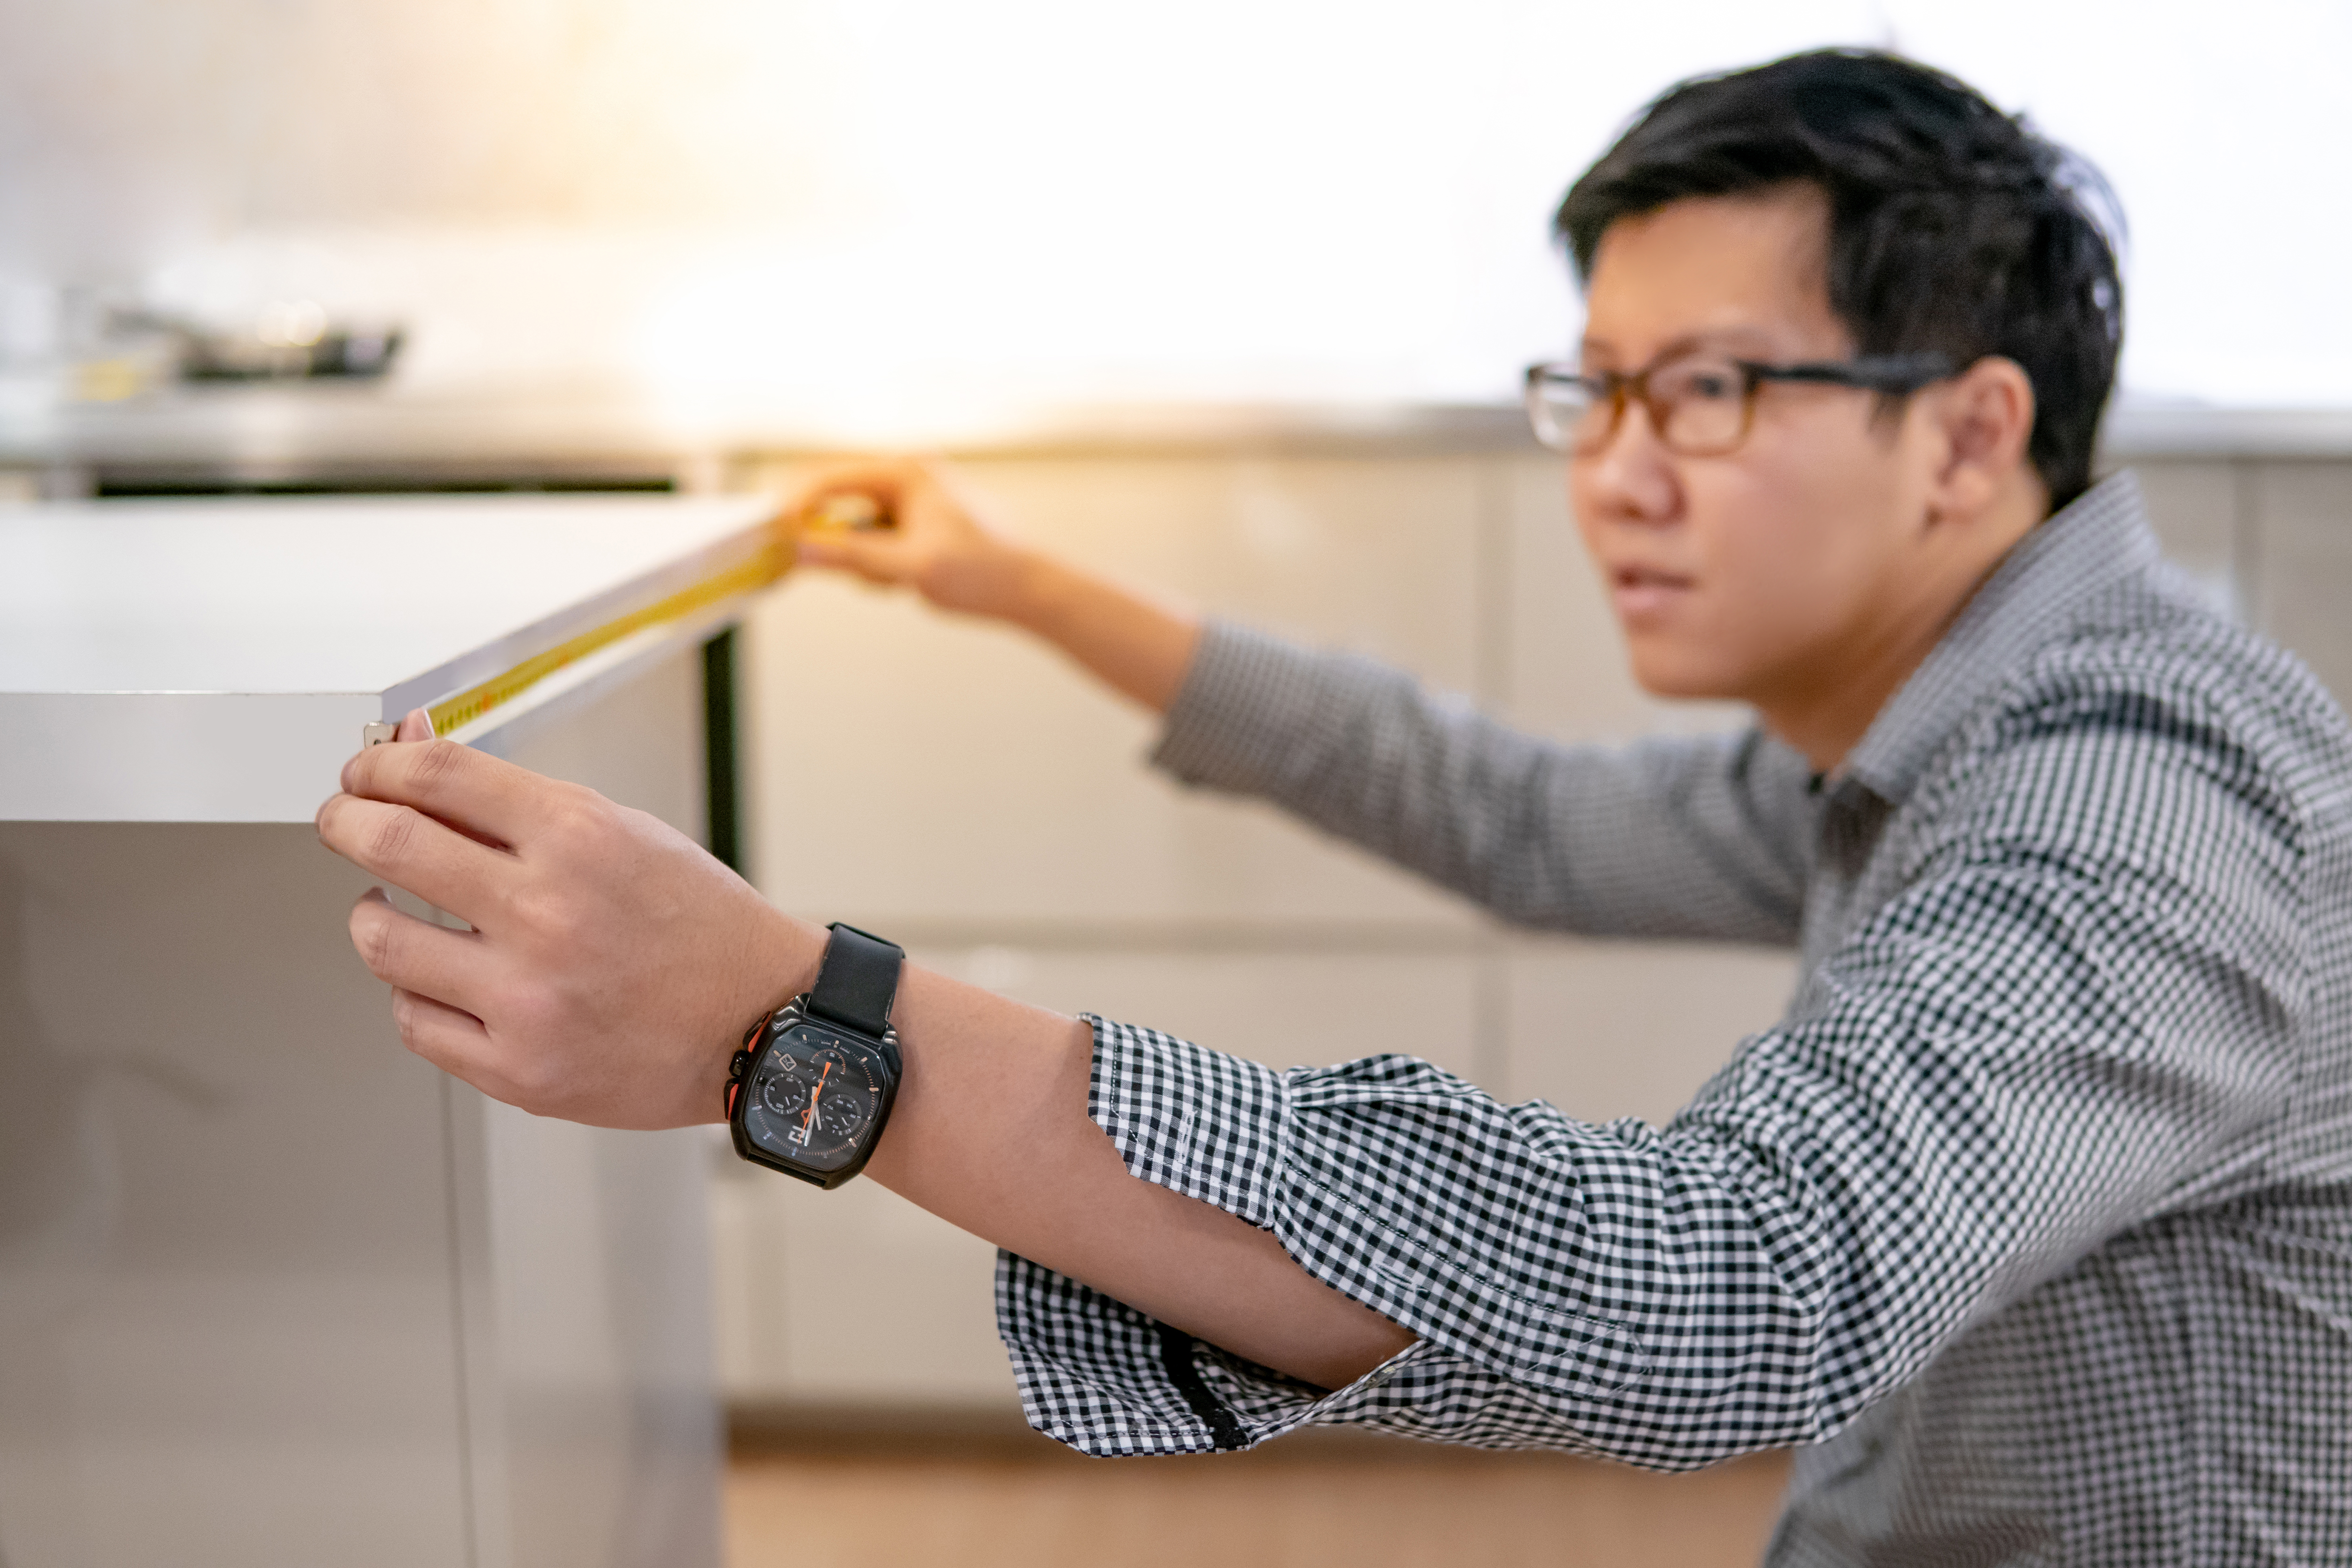 How Deep Are Kitchen Cabinets? | Hunker